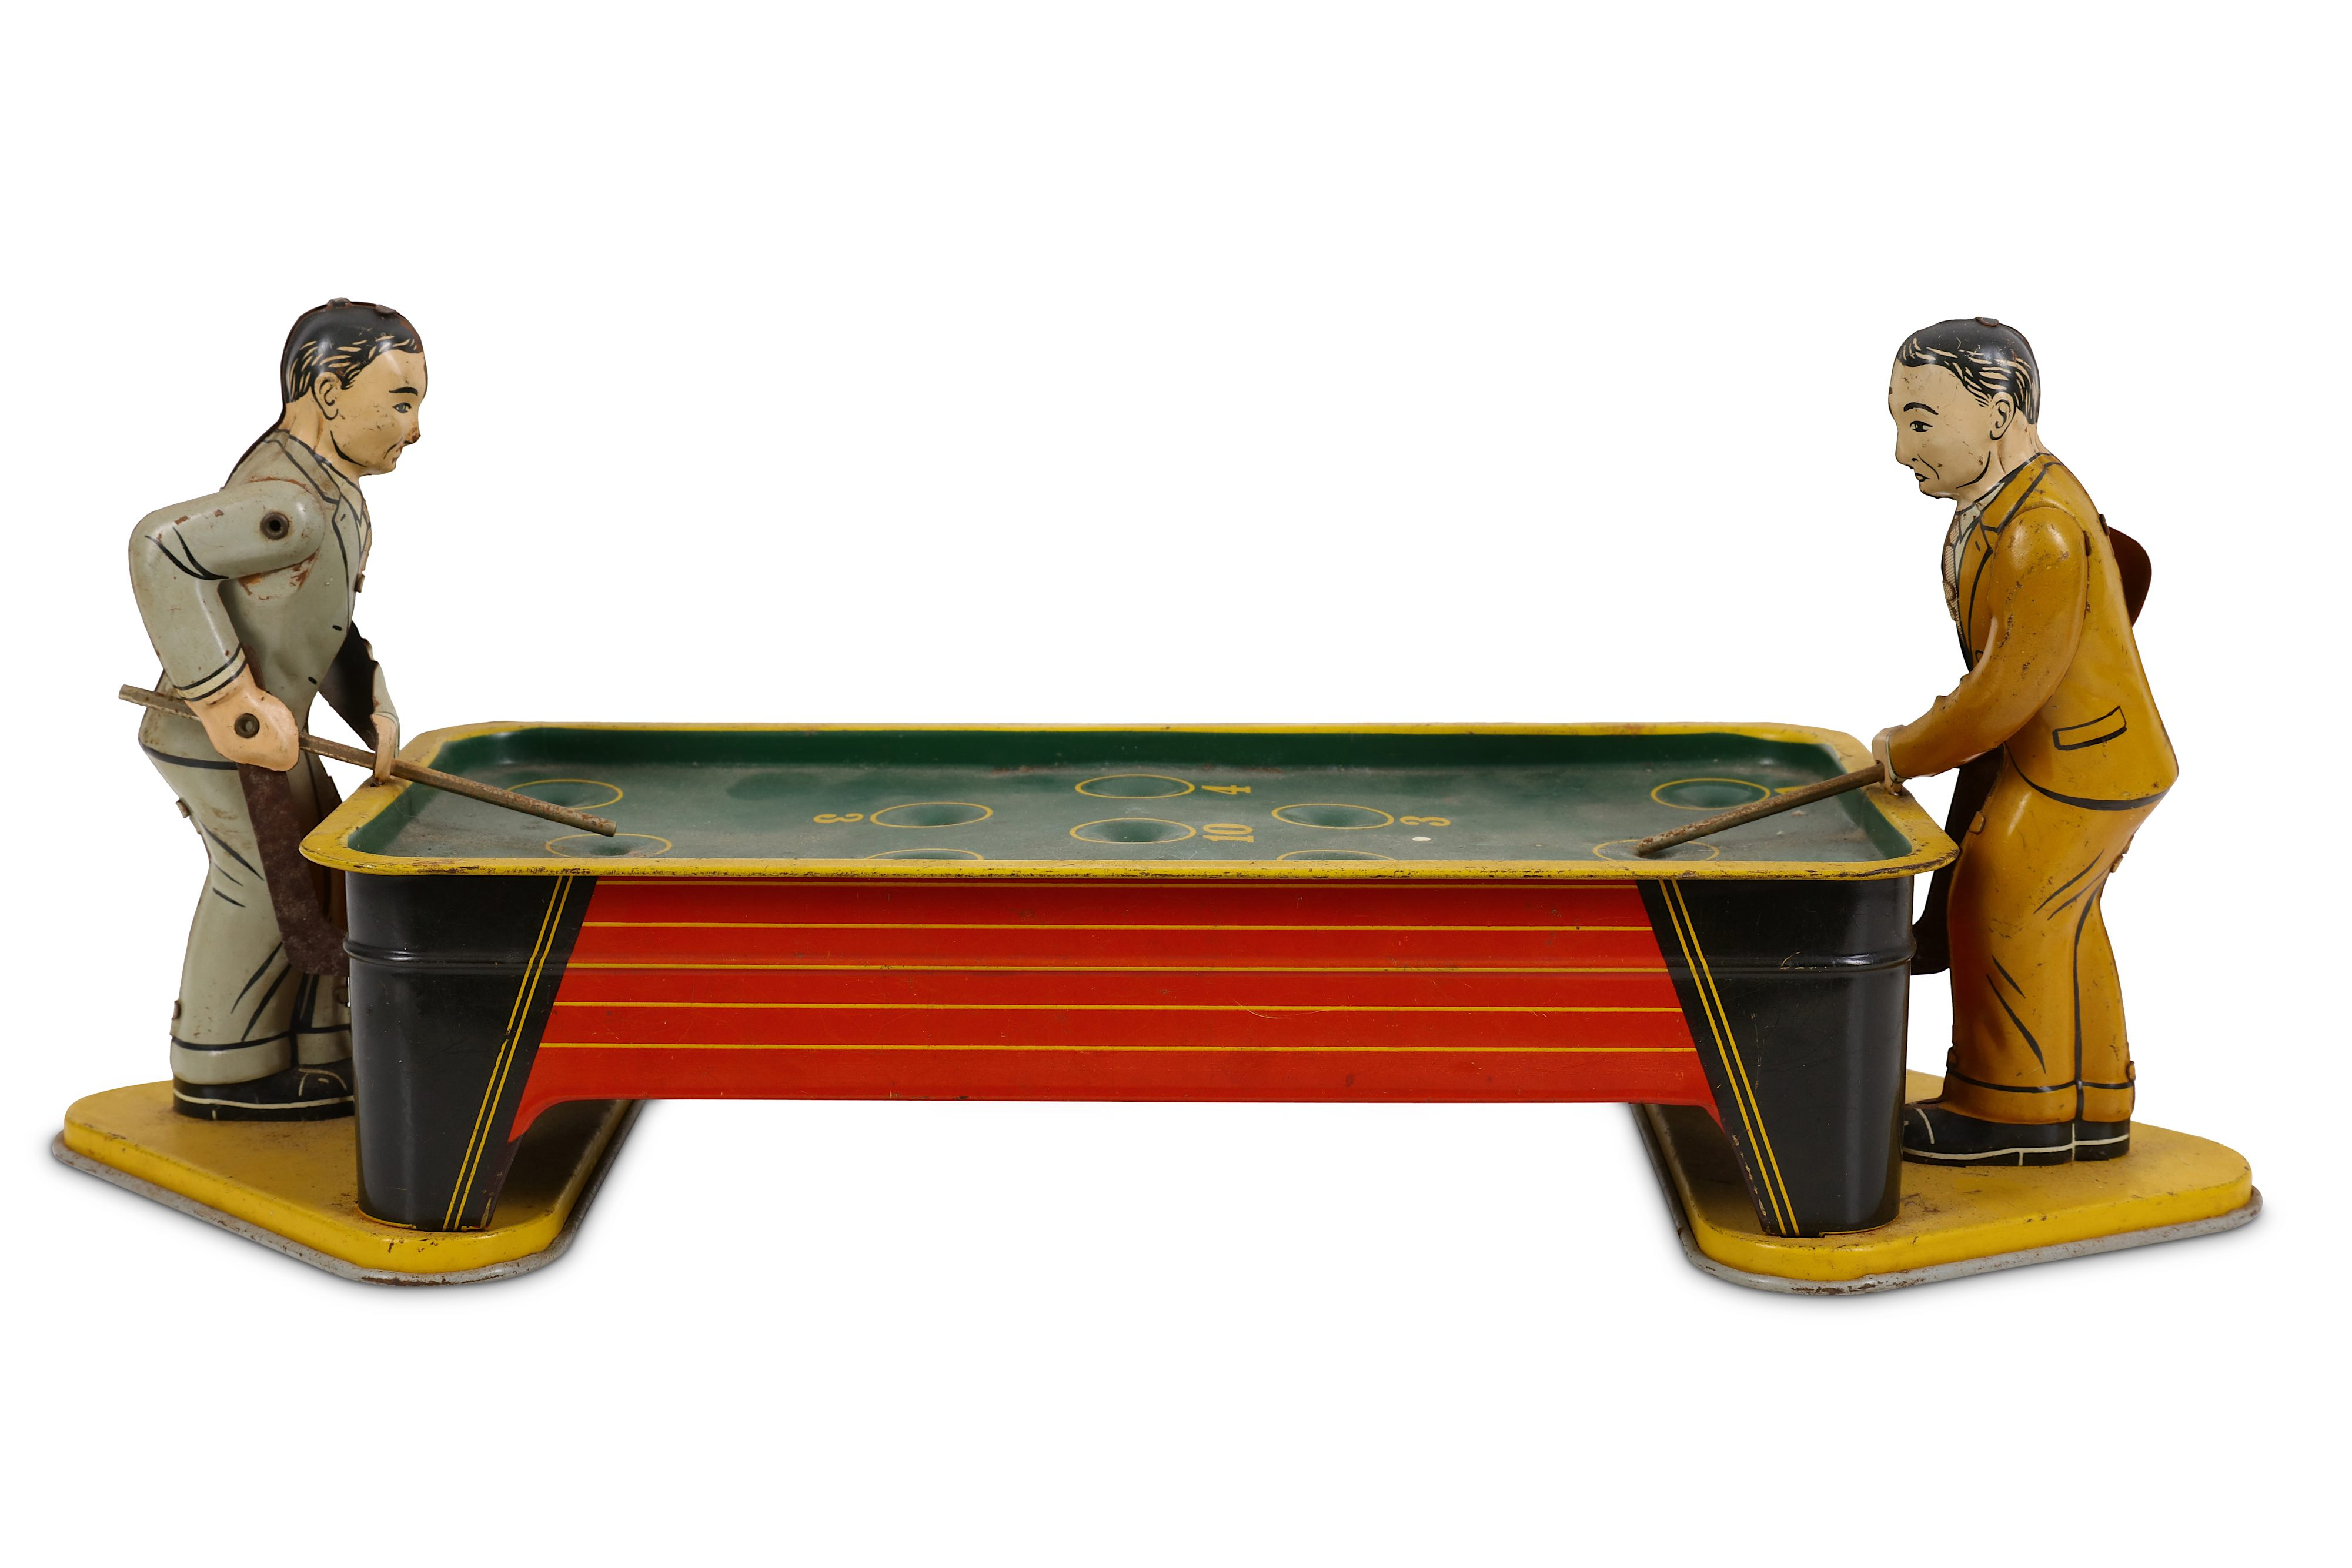 VINTAGE 1940S RANGER TINPLATE WIND UP POOL TABLE AND PLAYERS - Image 2 of 3